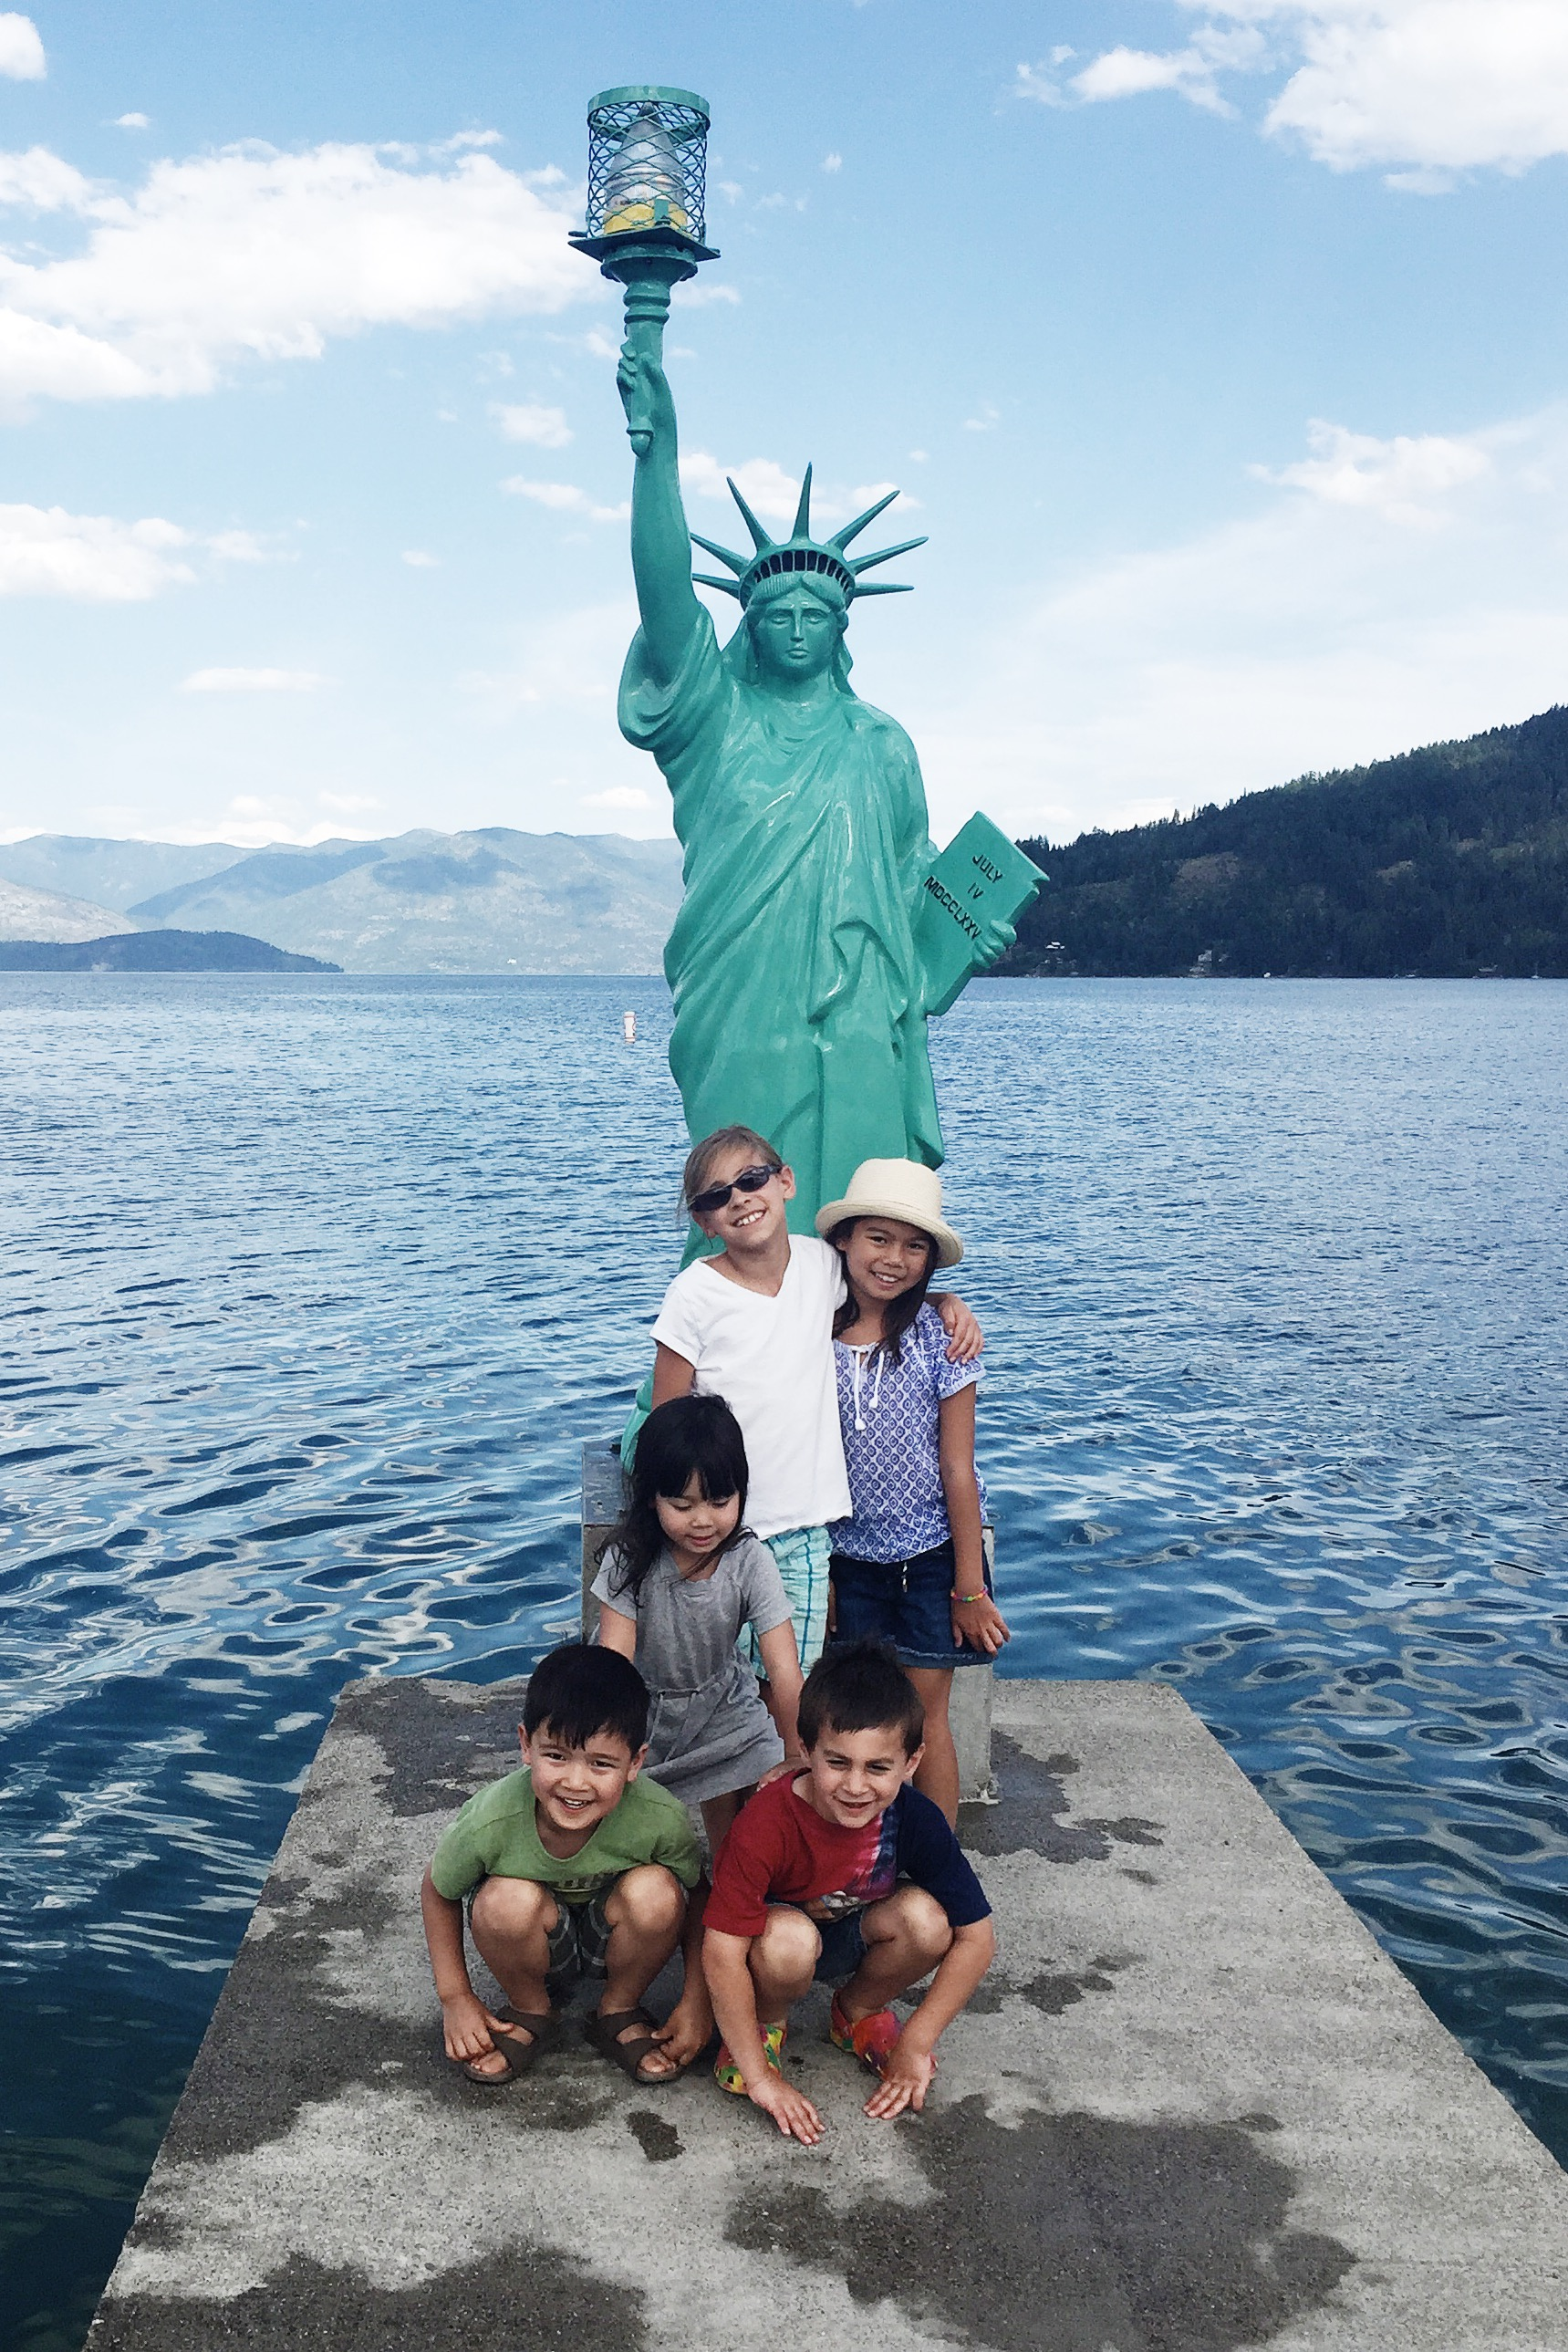 Can't make it to New York to see the Statue of Liberty? No problem! you can find a mini one in Sandpoint